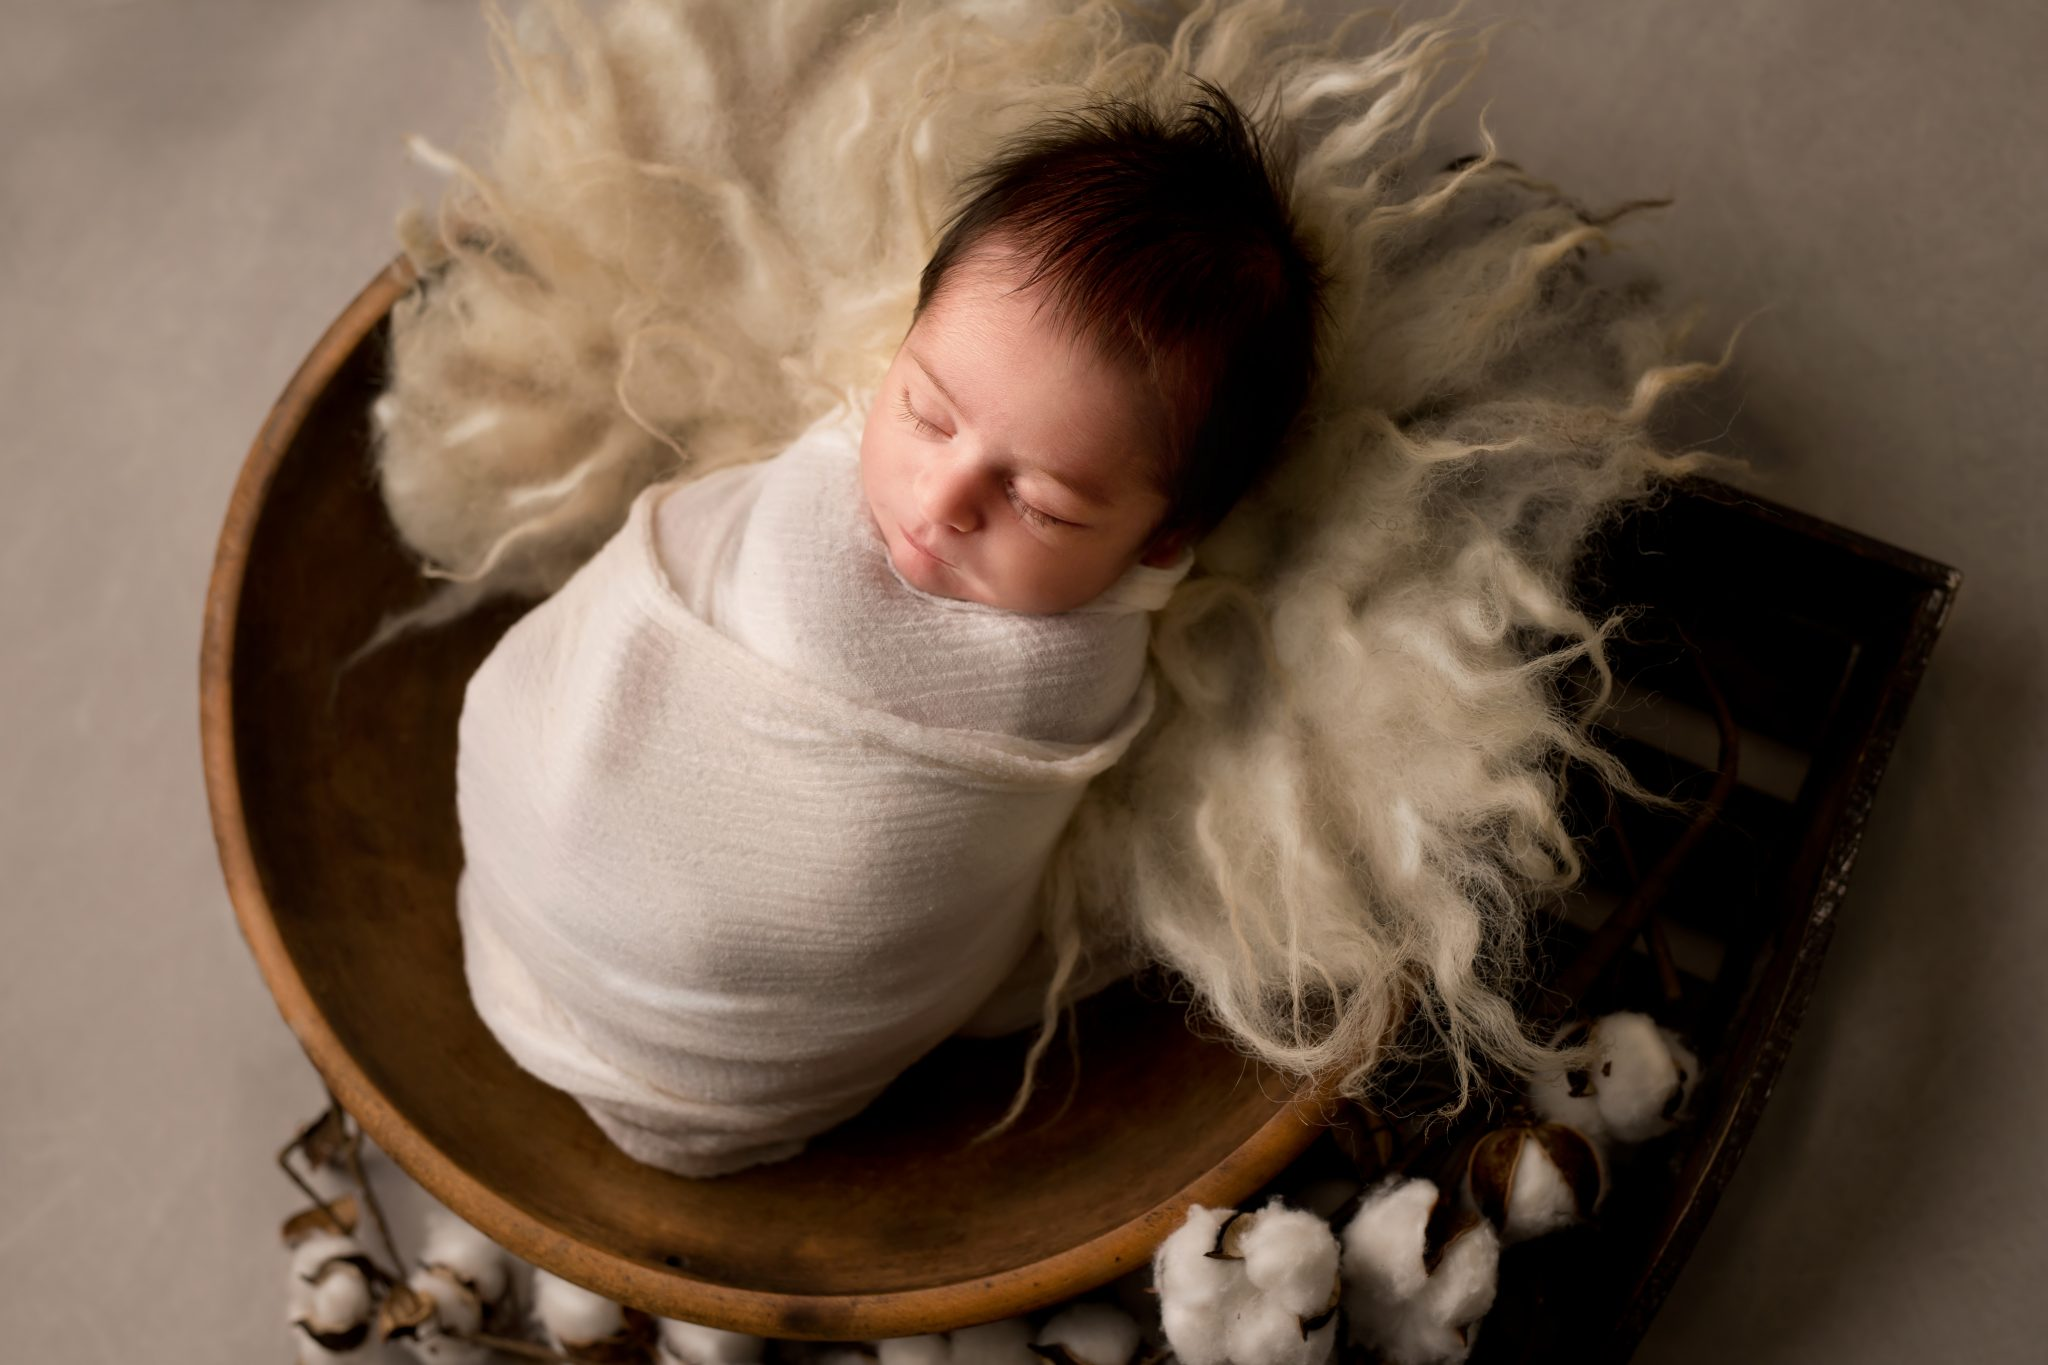 newborn baby boy in off white wrap in a wooden bowl